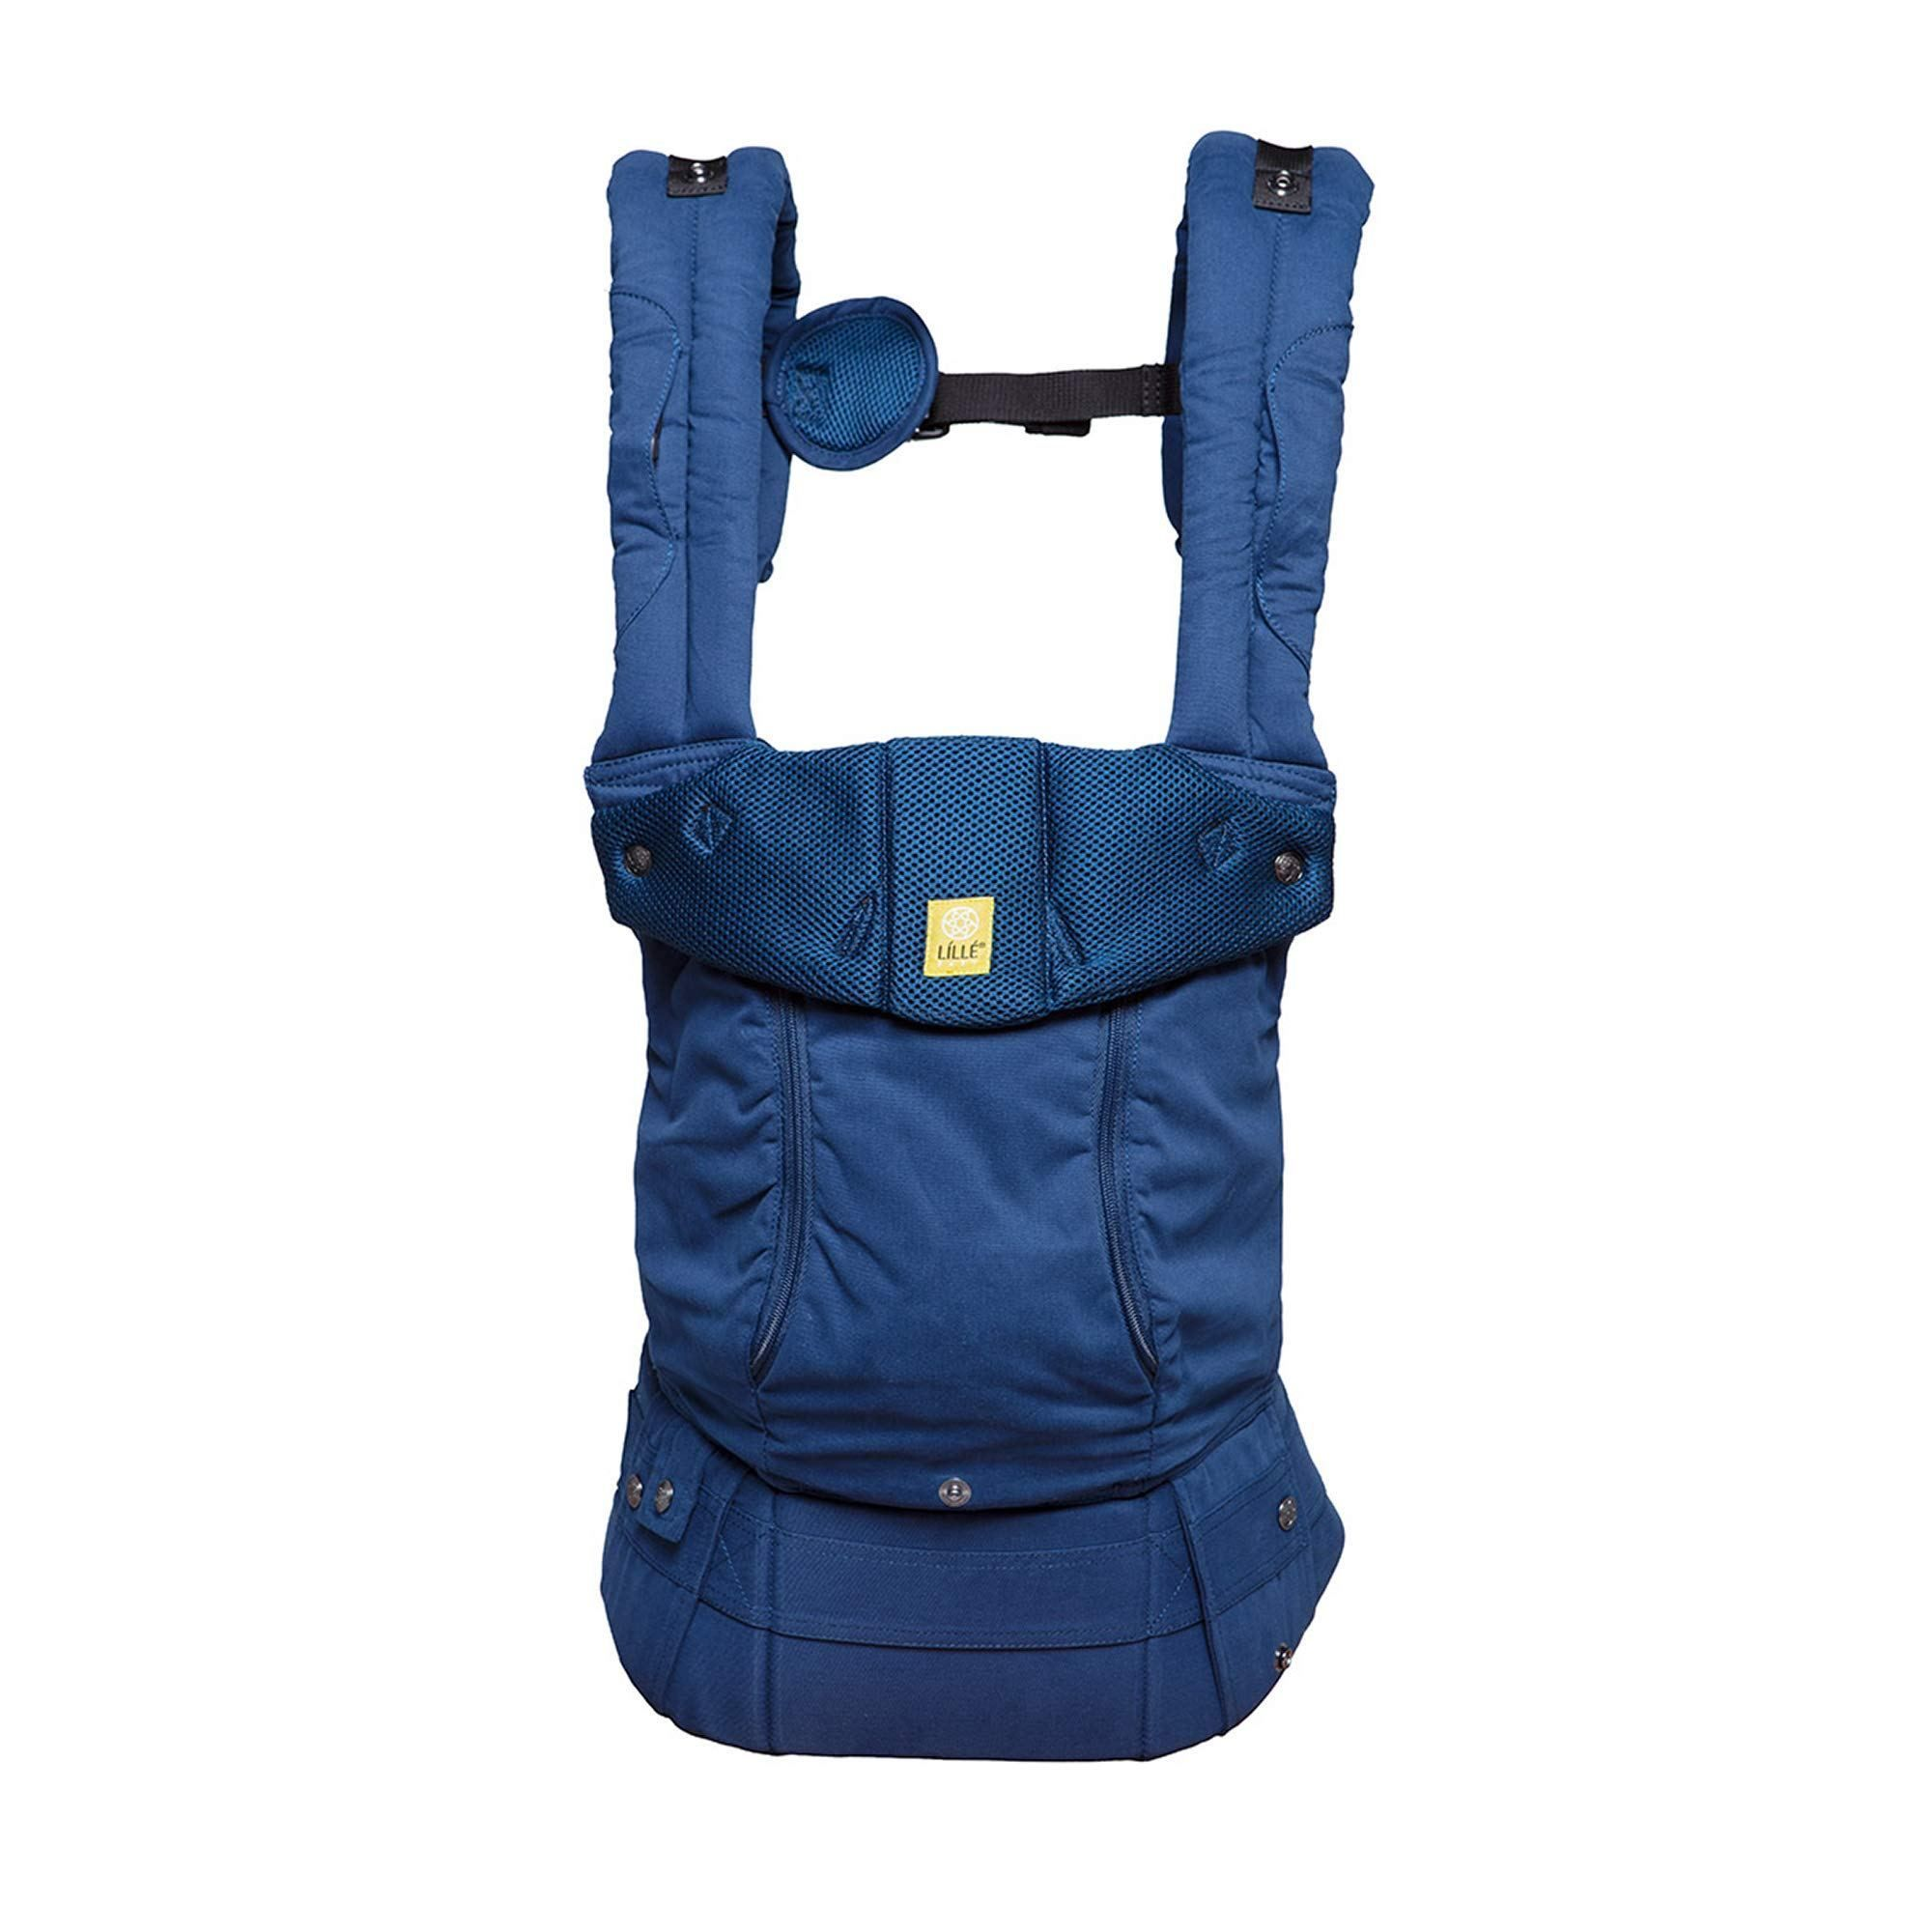 Lillebaby Complete All Seasons SIX-Position 360 Ergonomic Baby /& Child Carrier